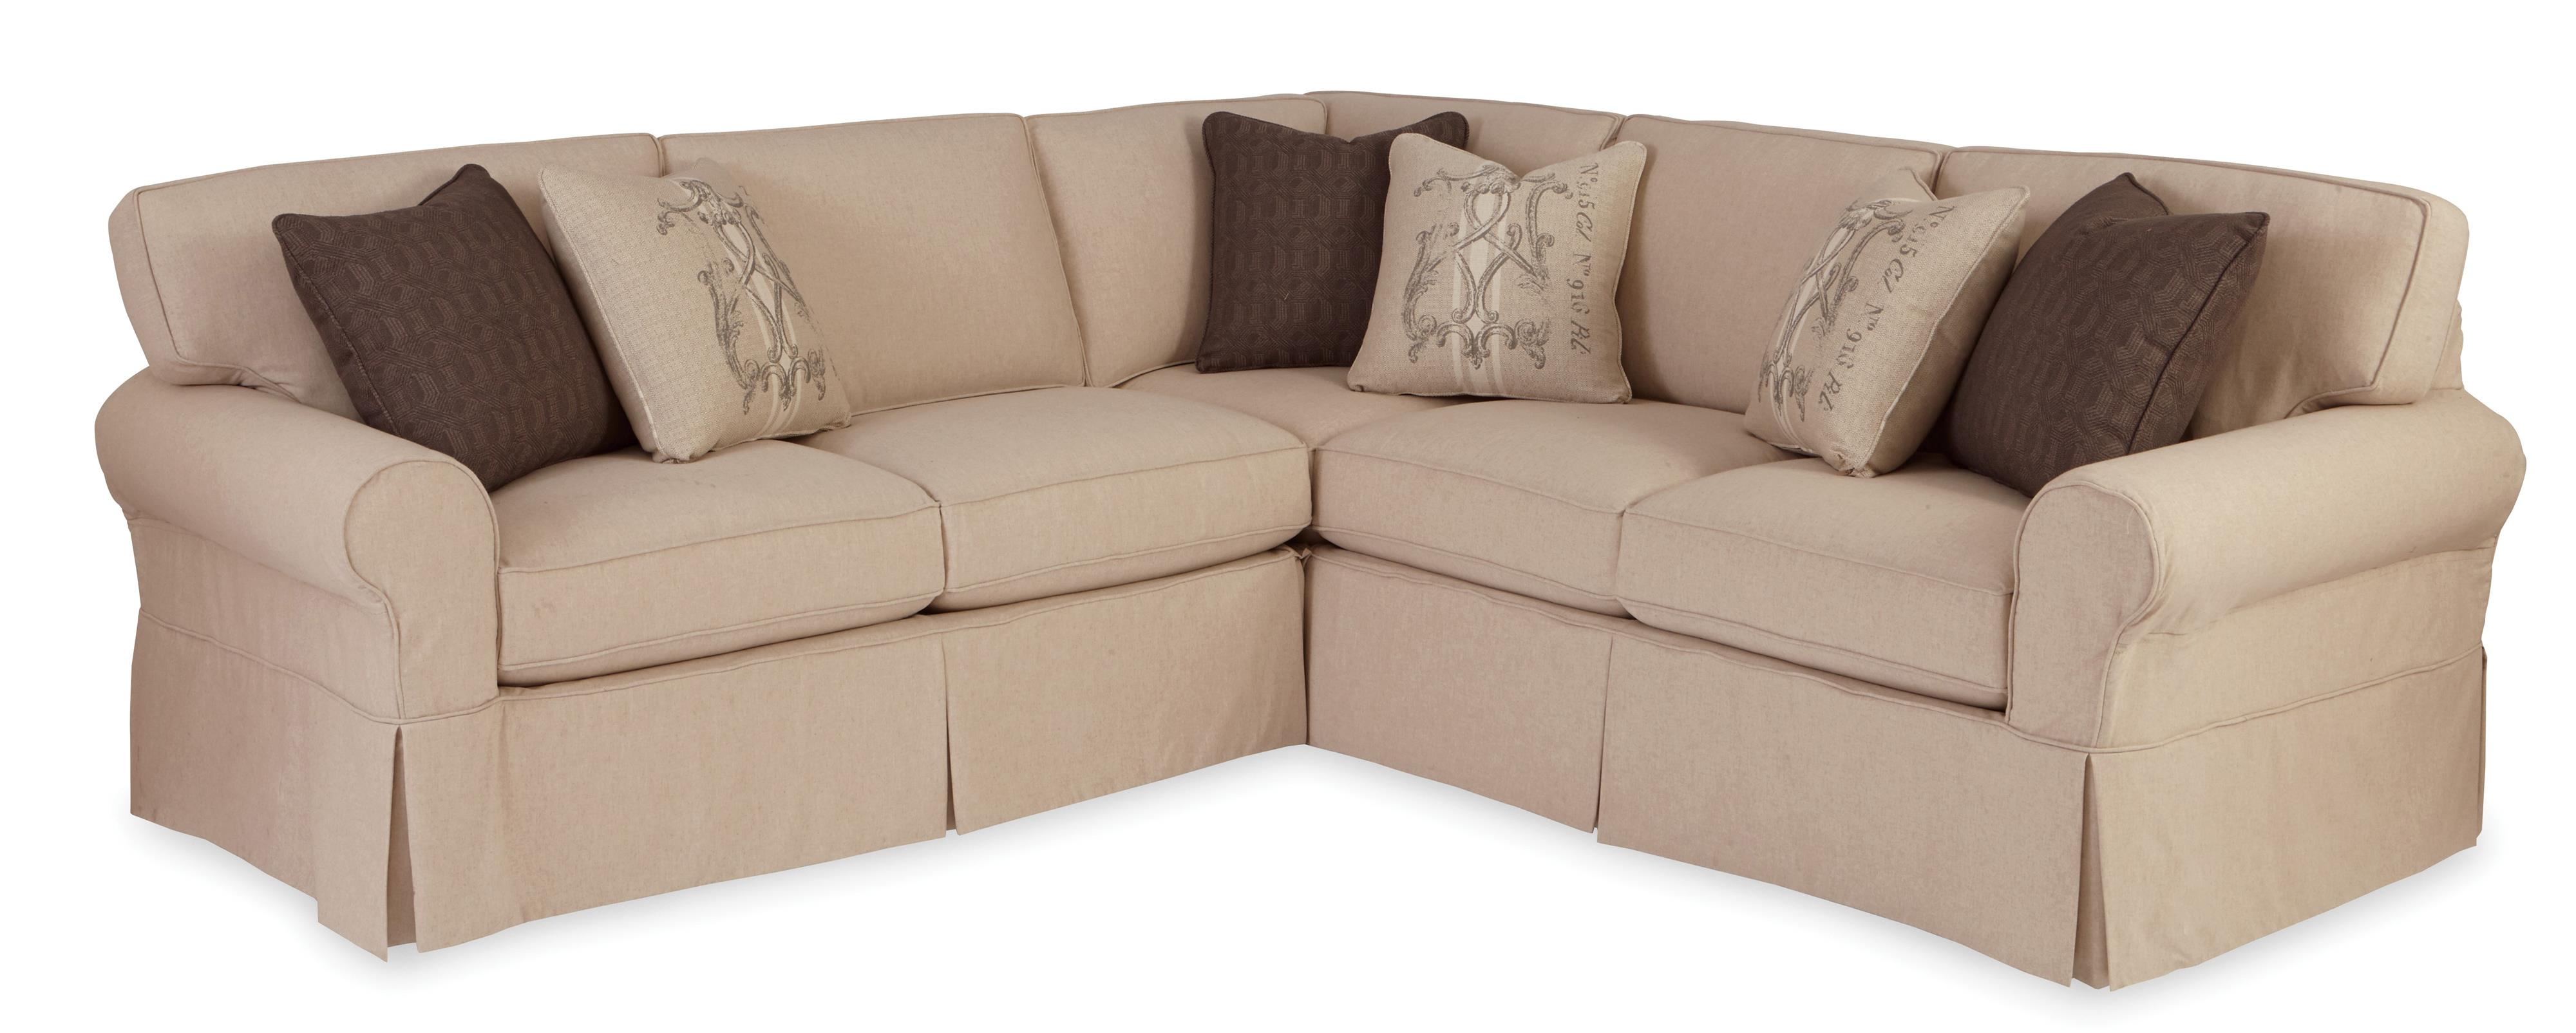 Two Piece Slipcovered Sectional Sofa with RAF Return Sofa by